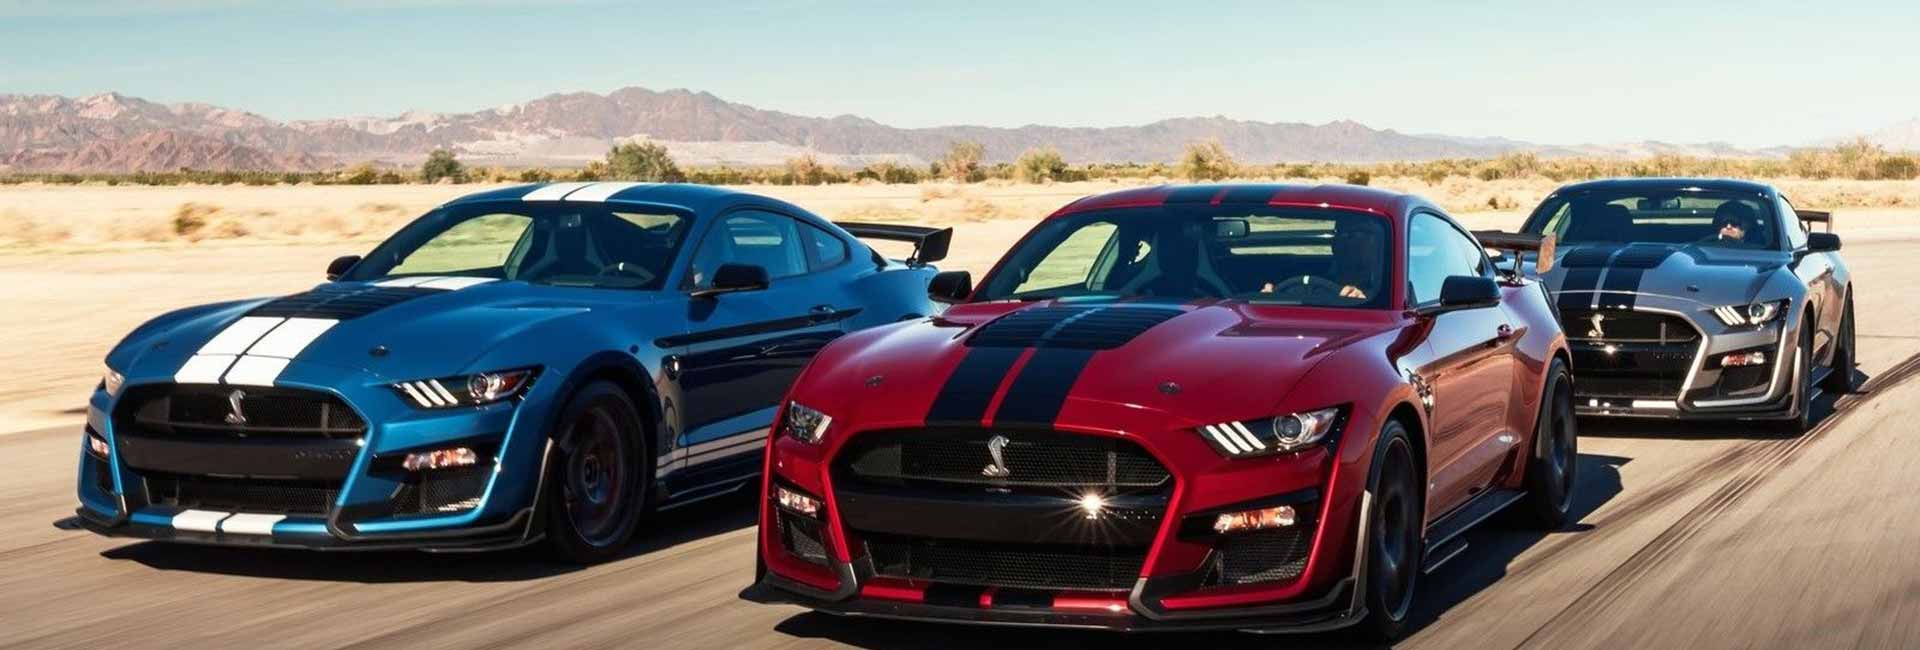 Ford Mustang Shelb GT500 2020